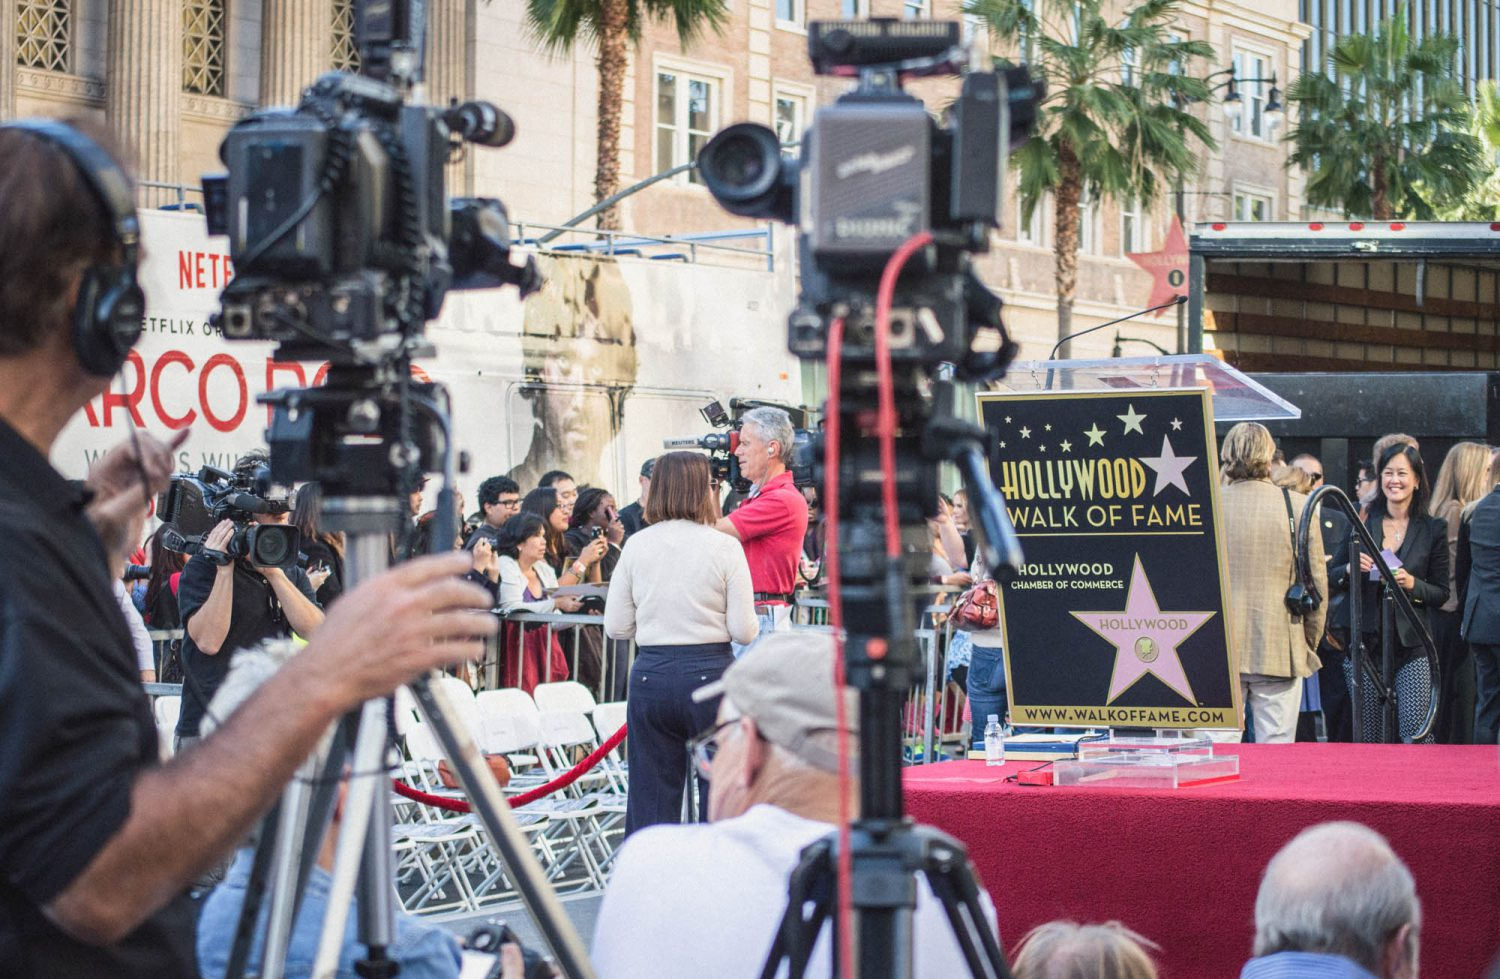 A guaranteed way to see celebrities in LA! Hollywood Walk of Fame ceremonies are free and awesome. Here's your guide on how to attend one.